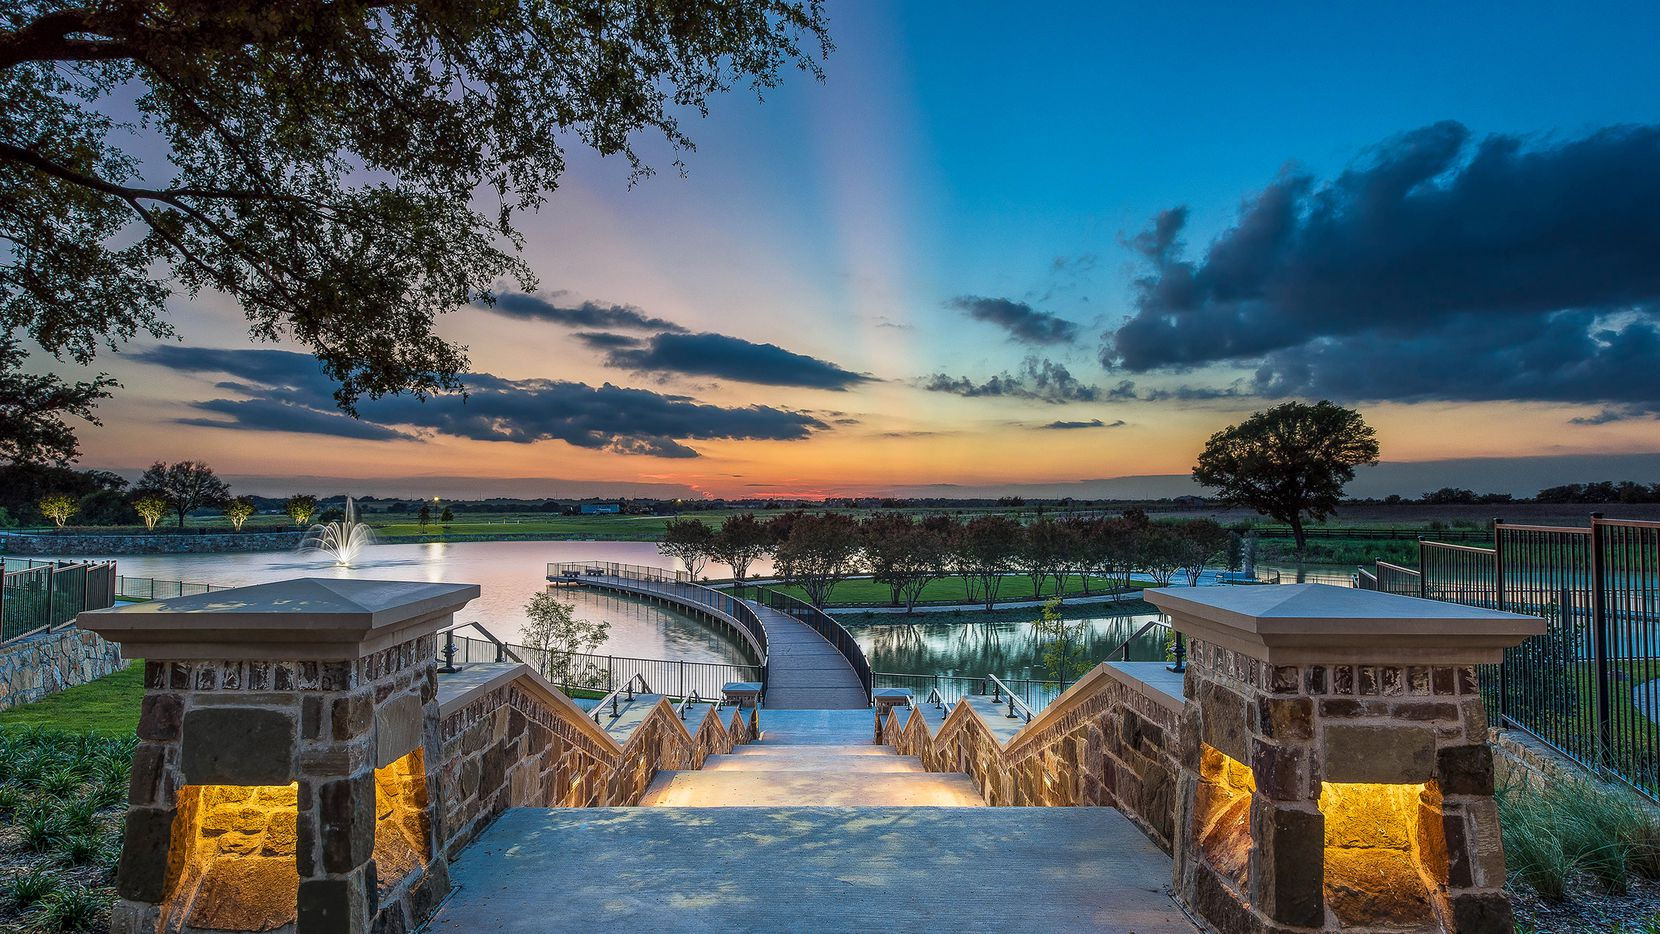 The Mustang Lakes community in Celina is surrounded by lakes and green spaces, trails and panoramic views. City planners in exurbs like Celina should choose intelligent growth rather than no growth.